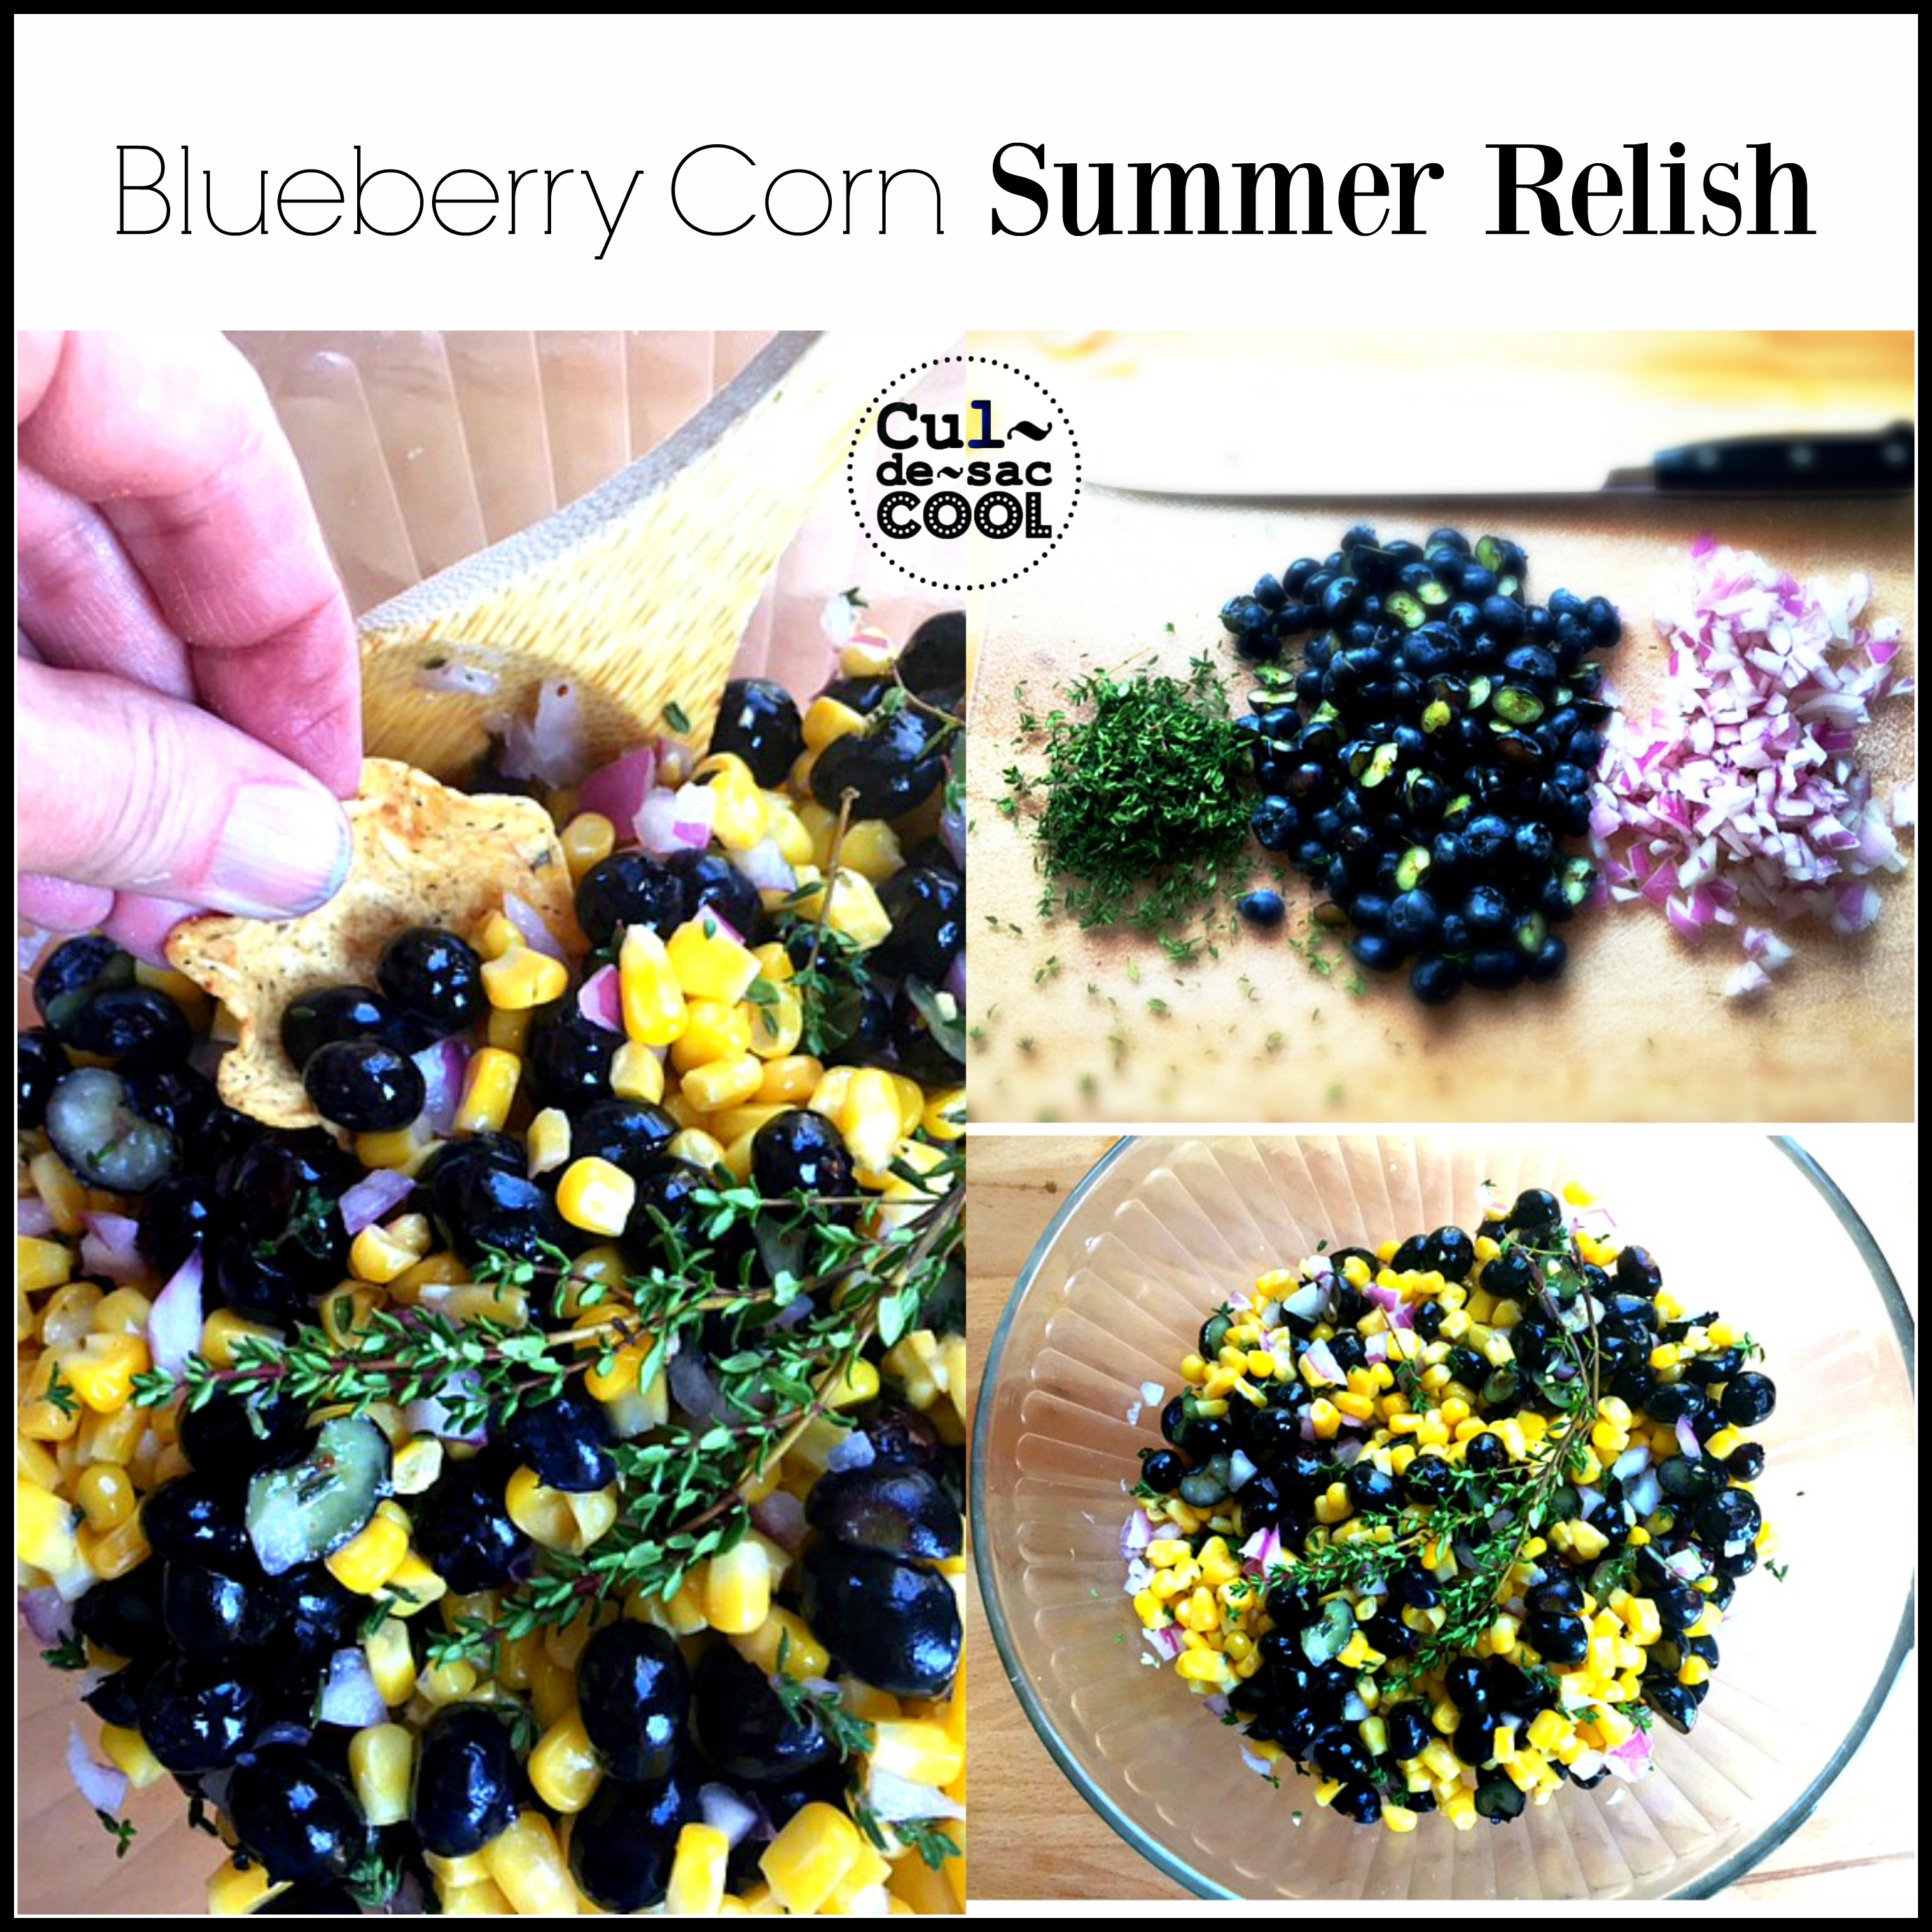 Blueberry Corn Summer Relish Collage